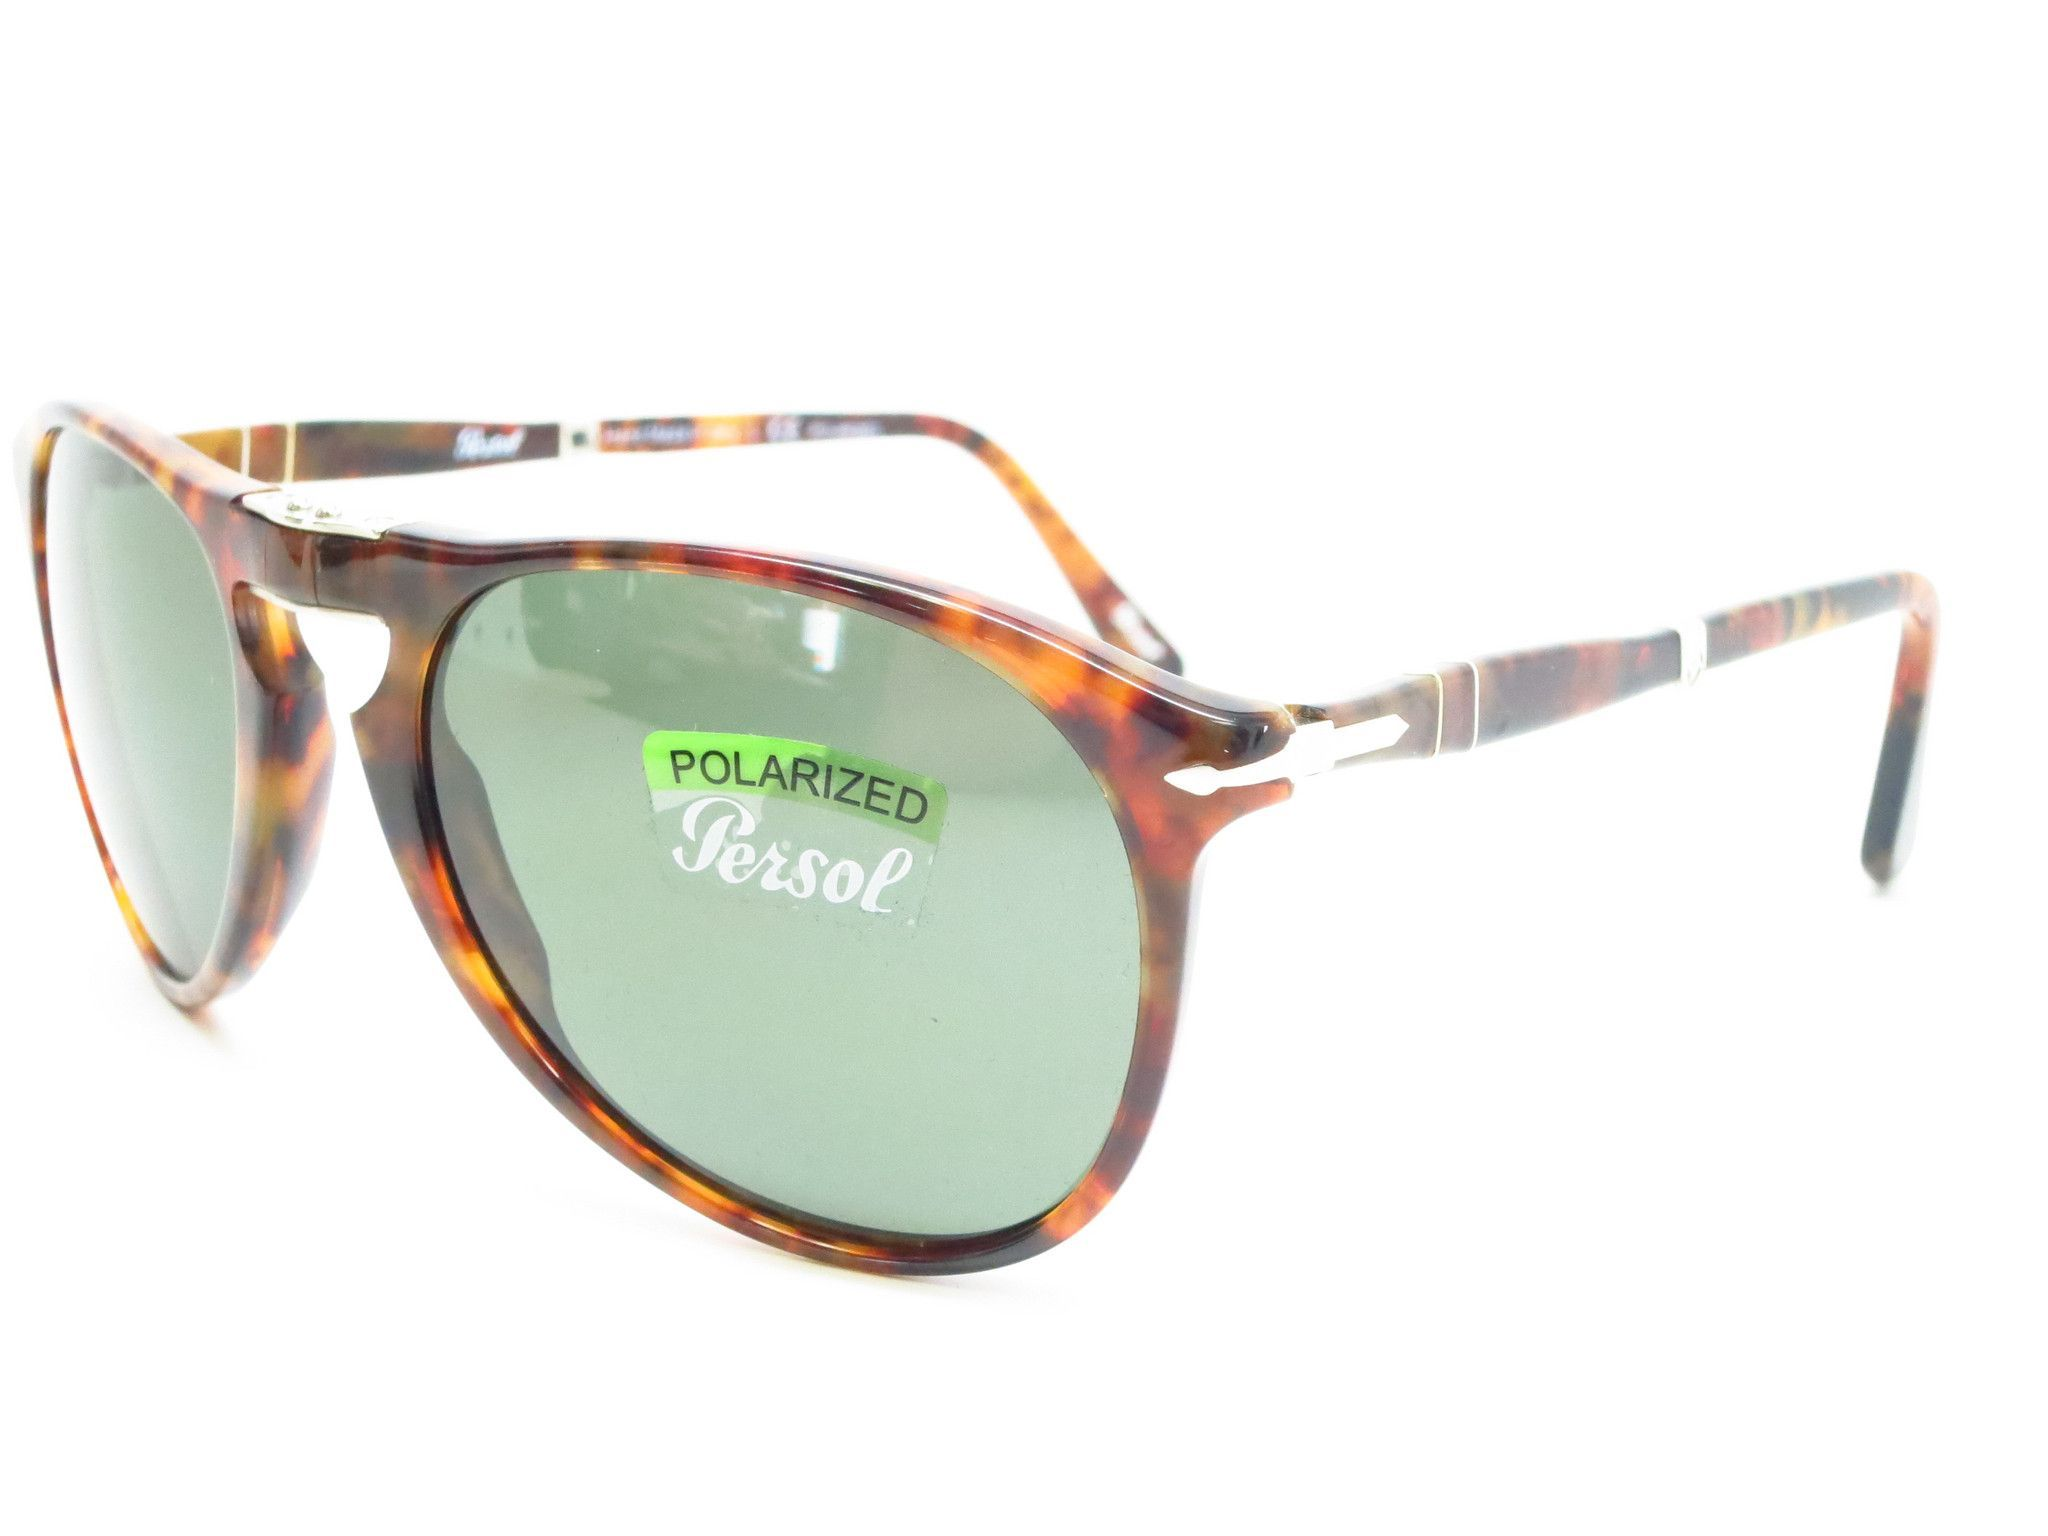 572acb937a Polarised Sunglasses · Persol PO 9714-S Product Details Brand Name   Persol  Model Number   PO 9714